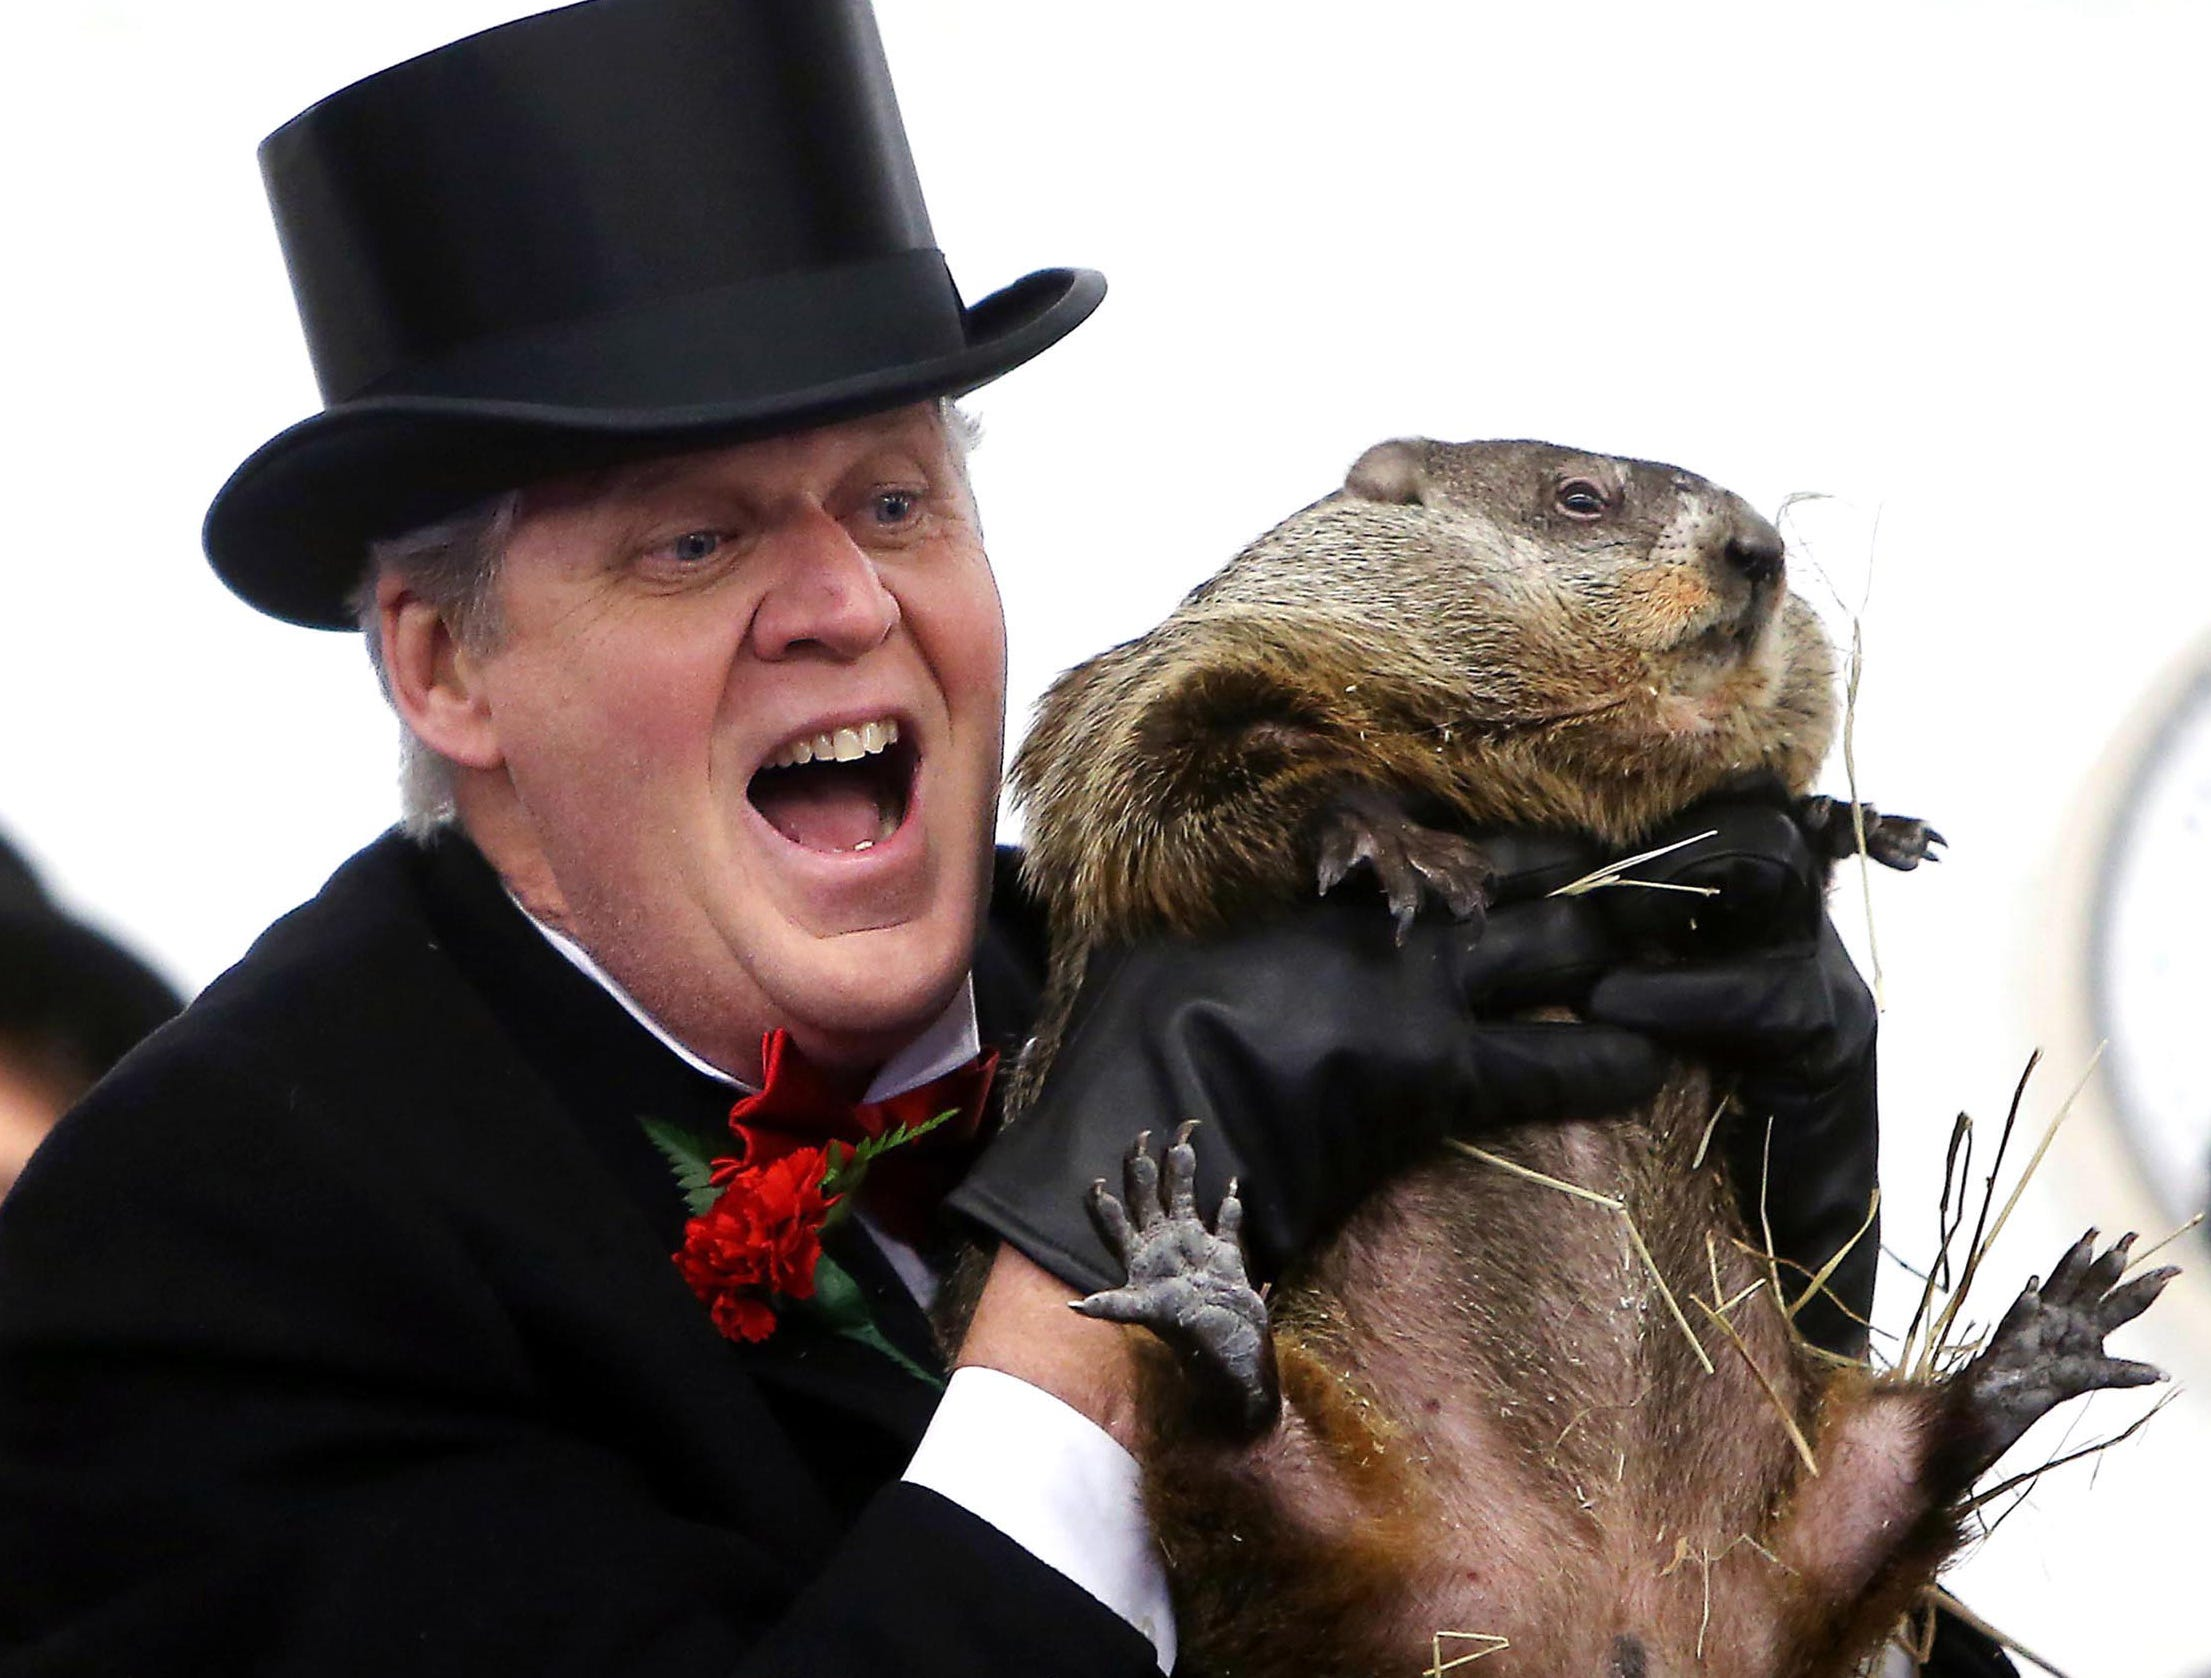 2/3/2017--Head Wrangler Jerry Guthlein holds up his groundhog Milltown Mel on Groundhog Day at the American Legion in Milltown, NJ. Milltown Mel did not see his shadow this morning, according to folklore the spring season will arrive early. The event is in its ninth year.